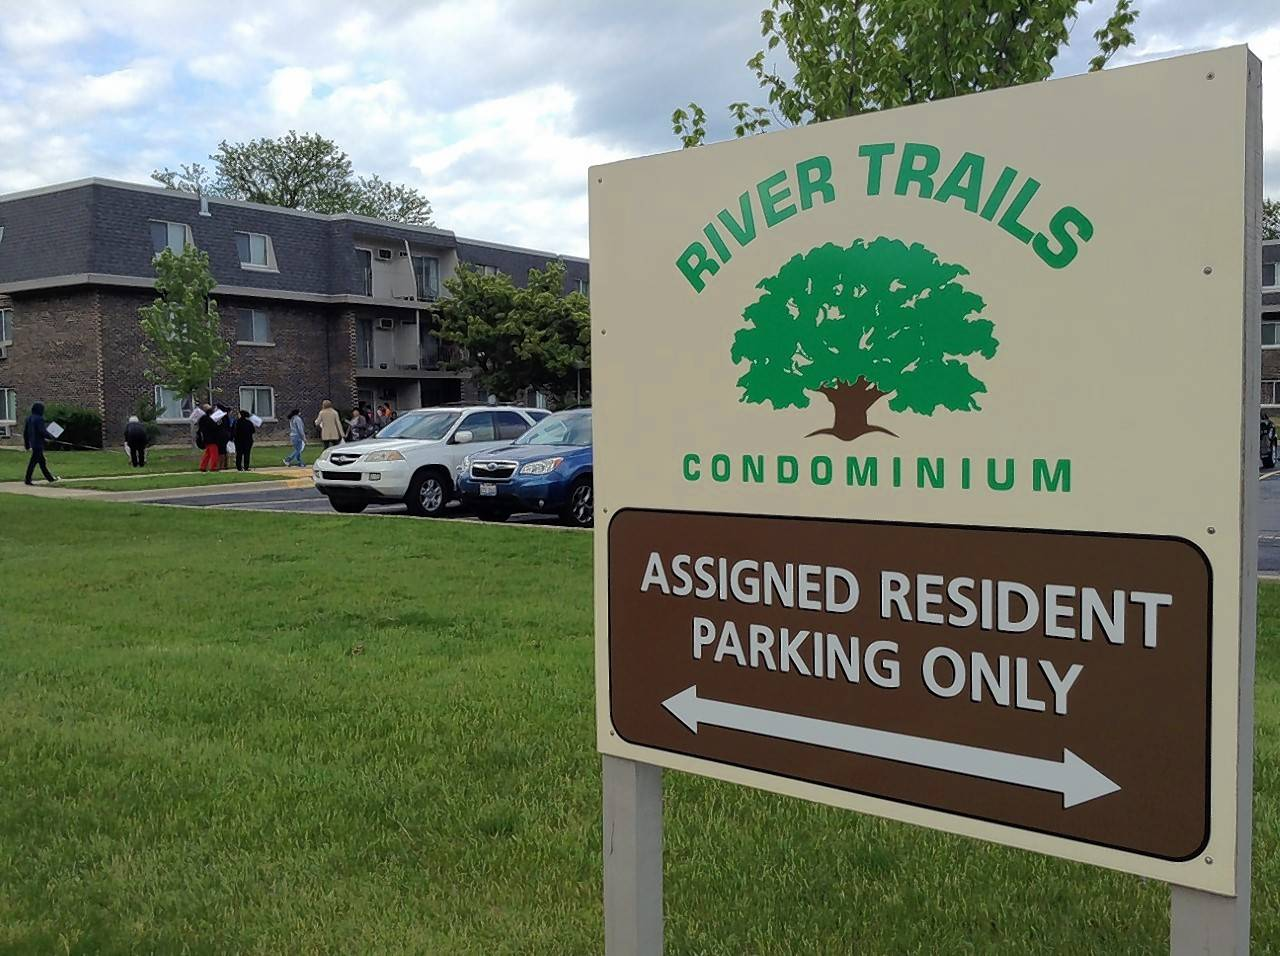 The River Trails Condominium Association is suing some residents, claiming they defamed board members during an ongoing dispute over whether to convert the condos into apartments.